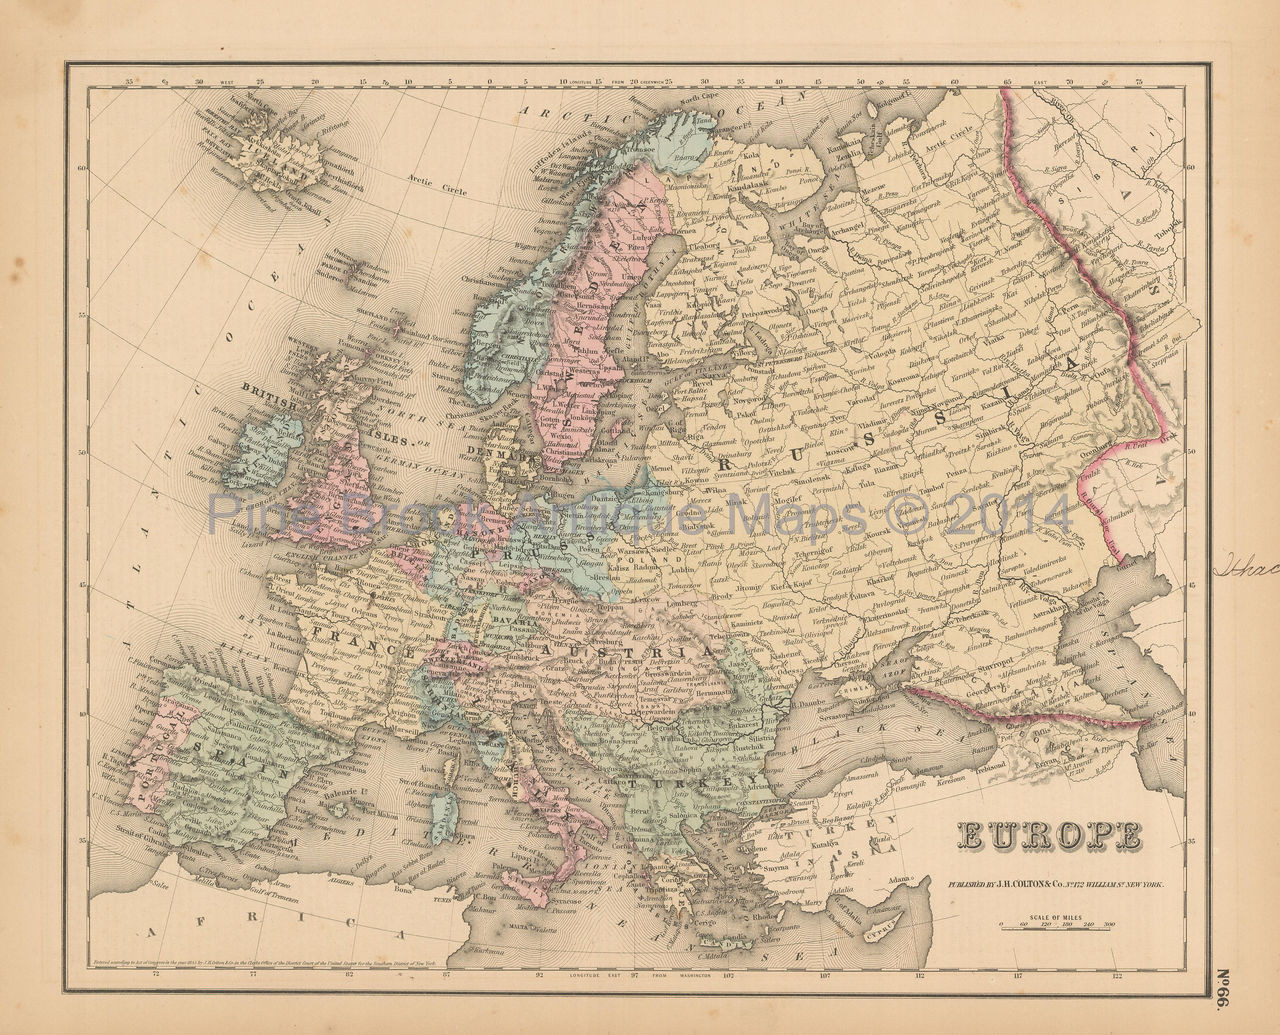 Map Of Europe For Sale.Europe Antique Map Colton 1858 For Sale Authentic European Decor